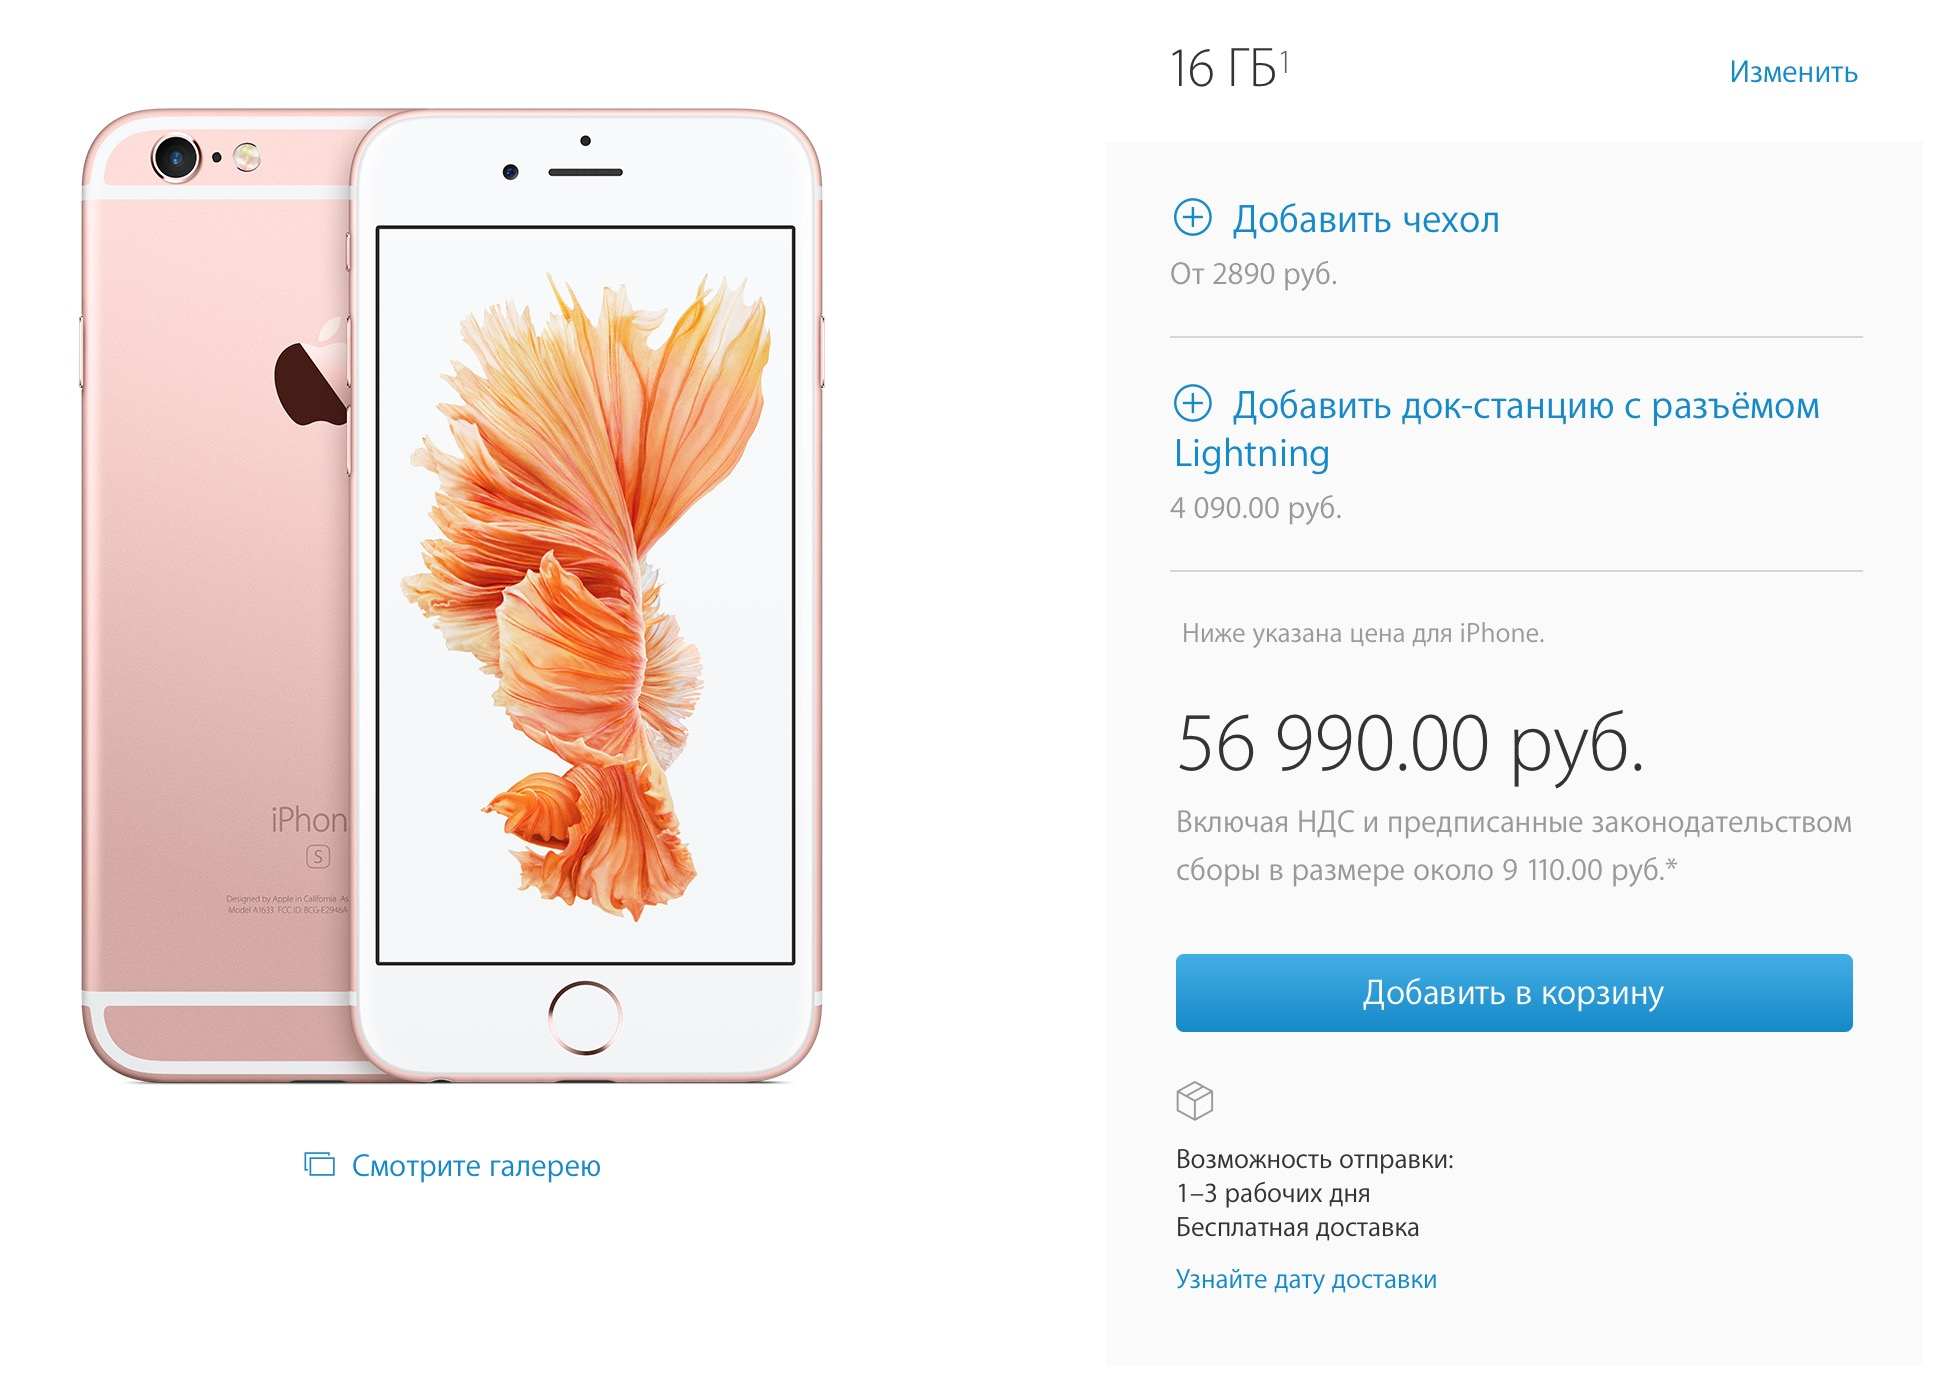 What to do if you do not have time to pre-order the iPhone 6s in Rossii review